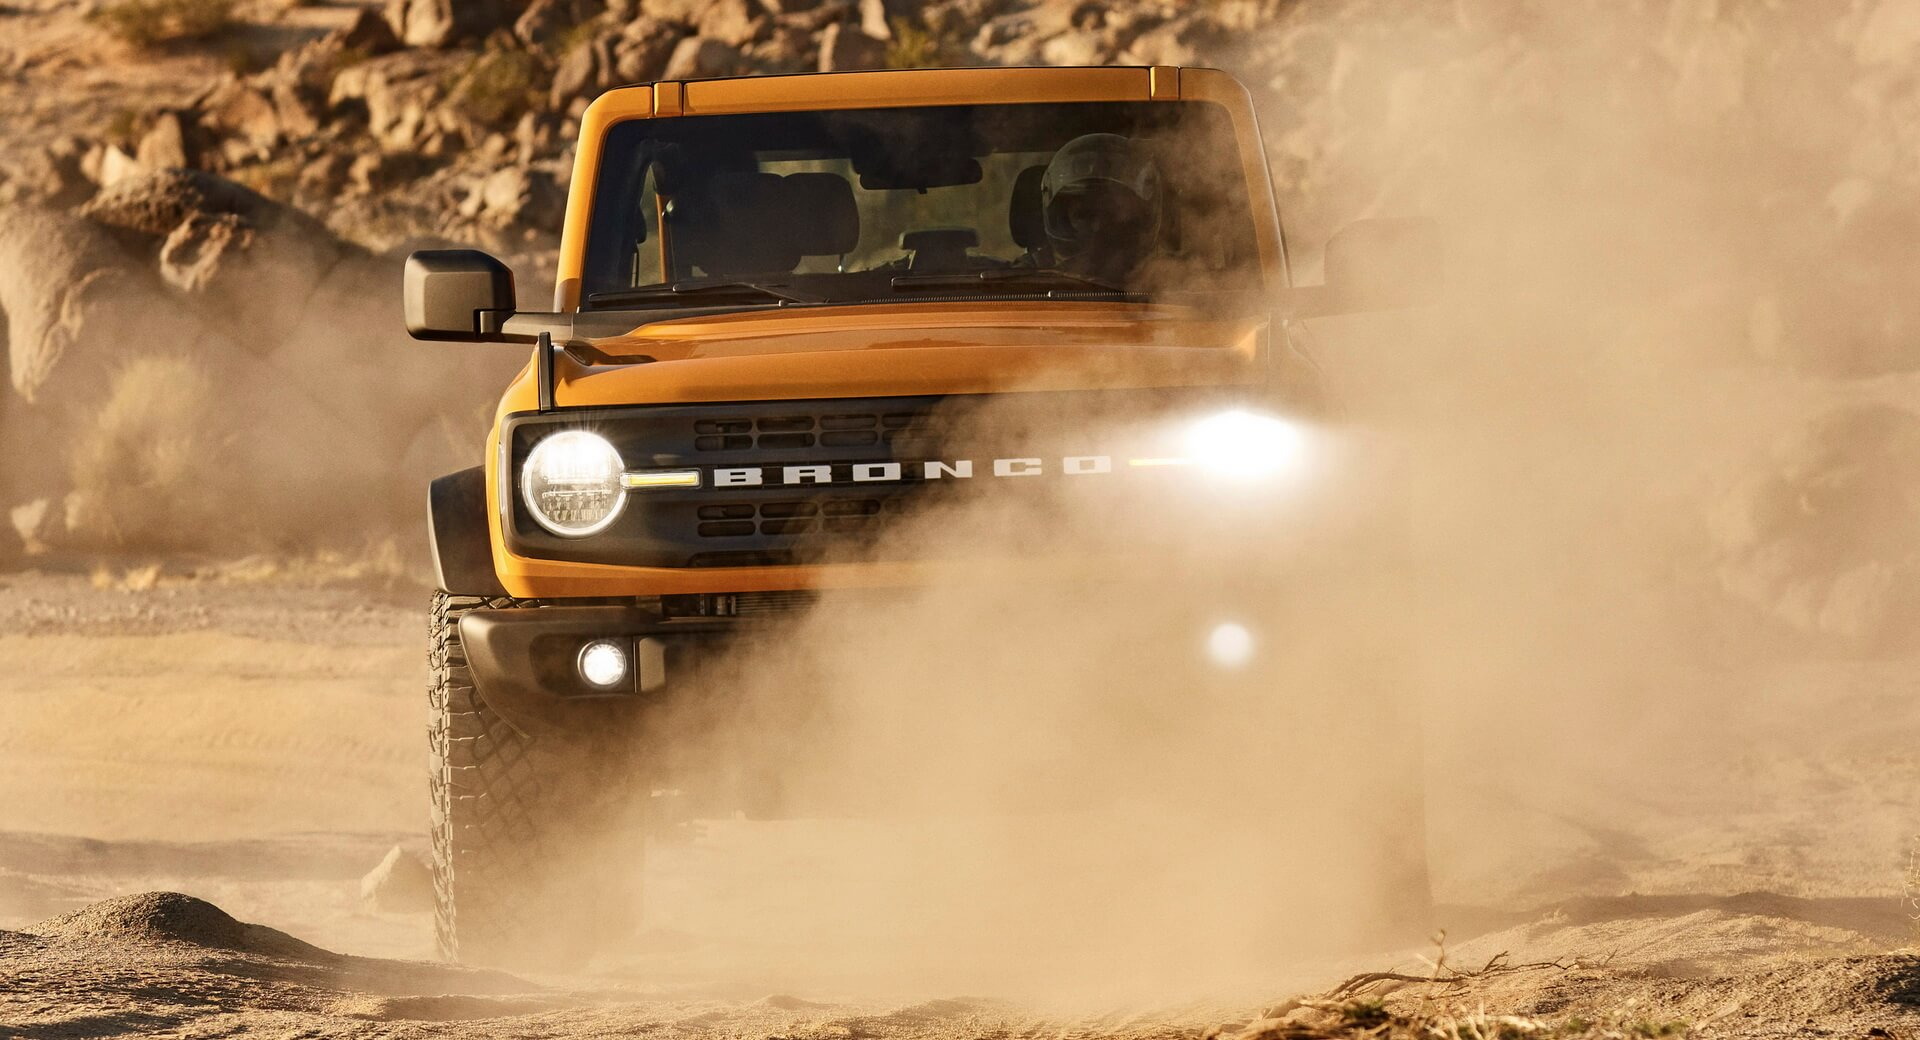 2021 Ford Bronco 03 1